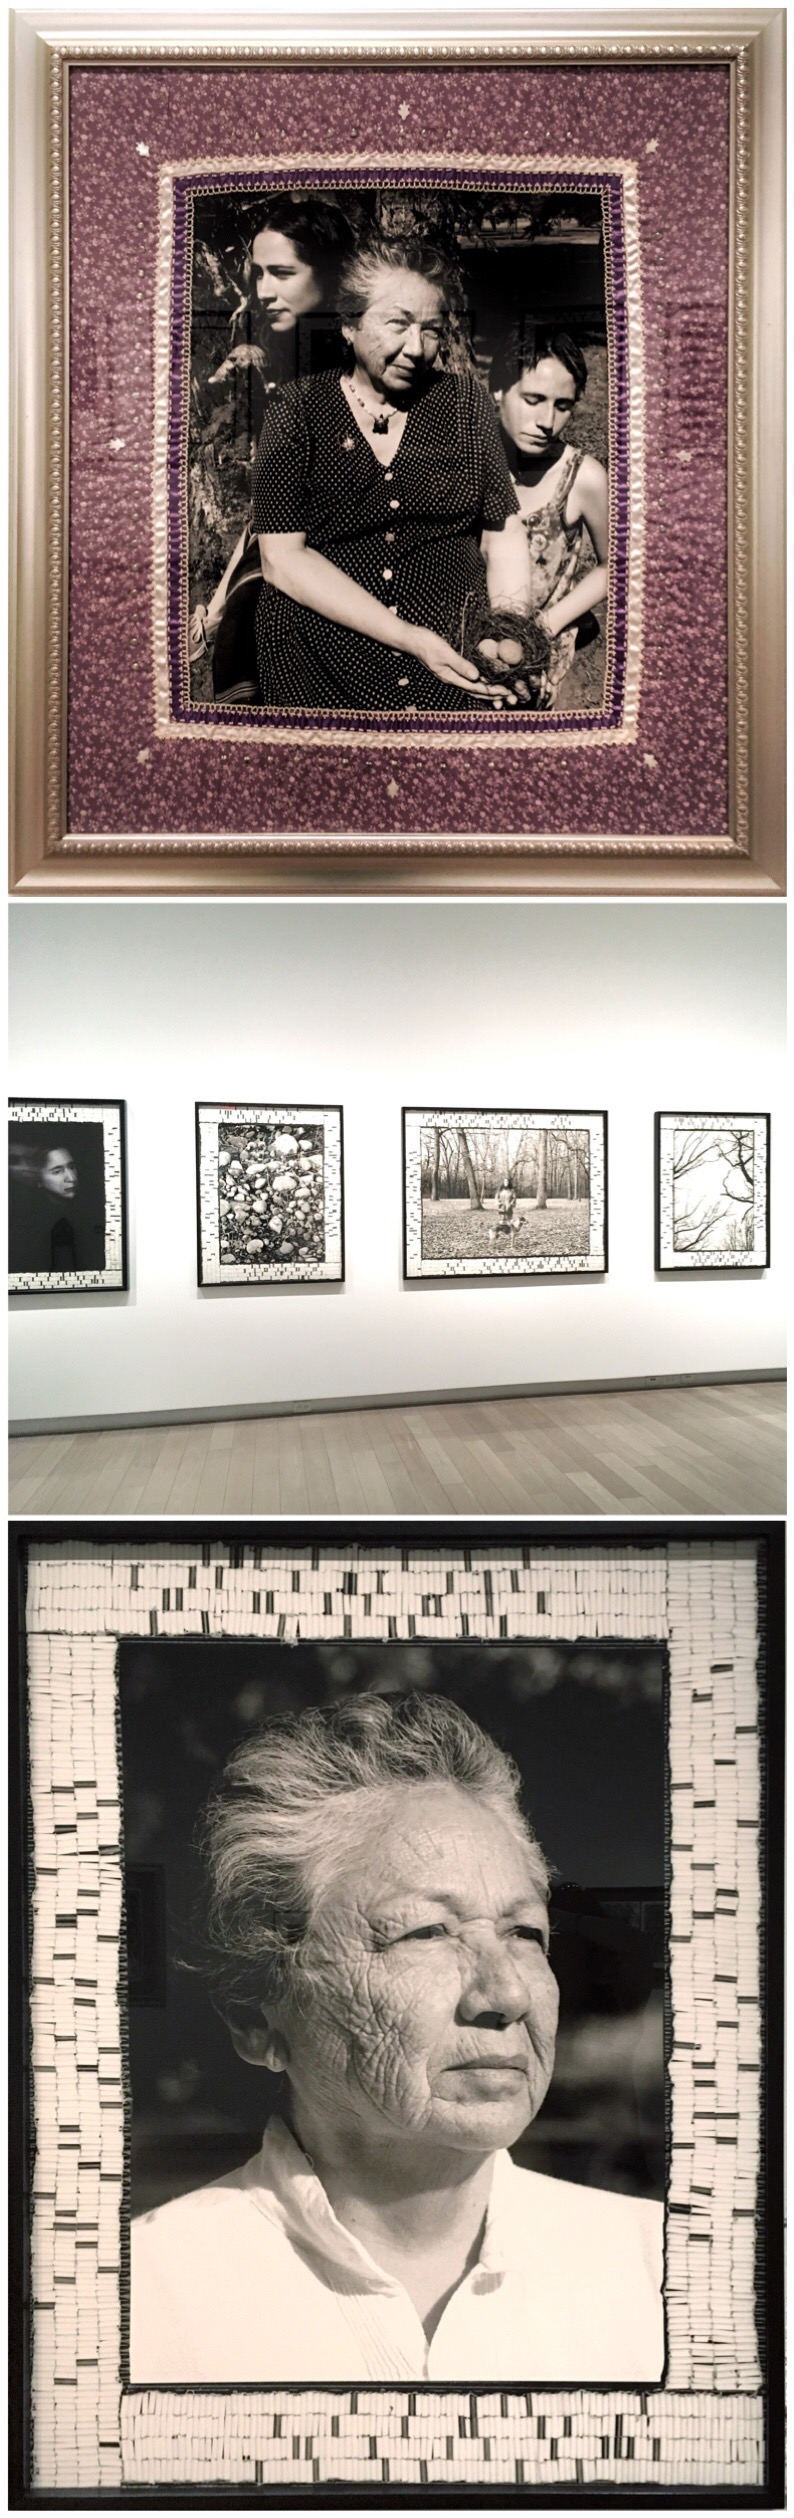 1. Shelley Niro,  Time Travels Through Us,  1999, Gelatin silver print, cotton and beaded mat.  2. Shot of Shelley Niro's exhibition  3. Shelley Niro, image from  Ghosts, Girls Grandmas,  2004-2007, Digital chromogenic print.